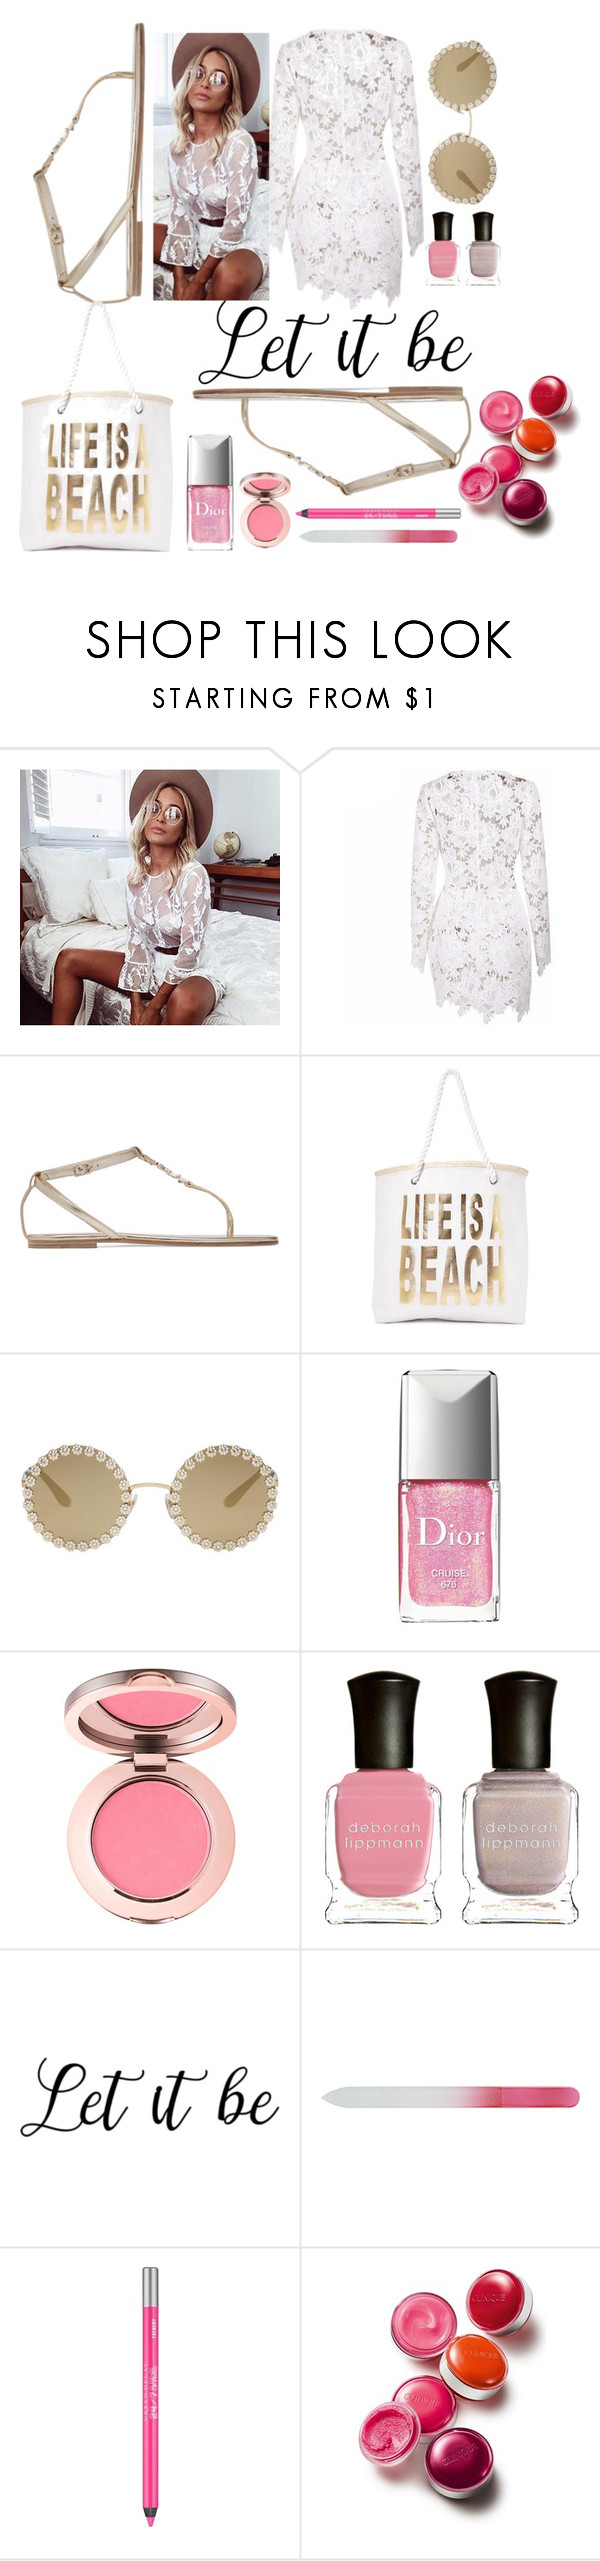 """""""Let it Be !"""" by sylviega ❤ liked on Polyvore featuring Yves Saint Laurent, Nasty Gal, Dolce&Gabbana, Christian Dior, Deborah Lippmann, Urban Decay and Clinique"""